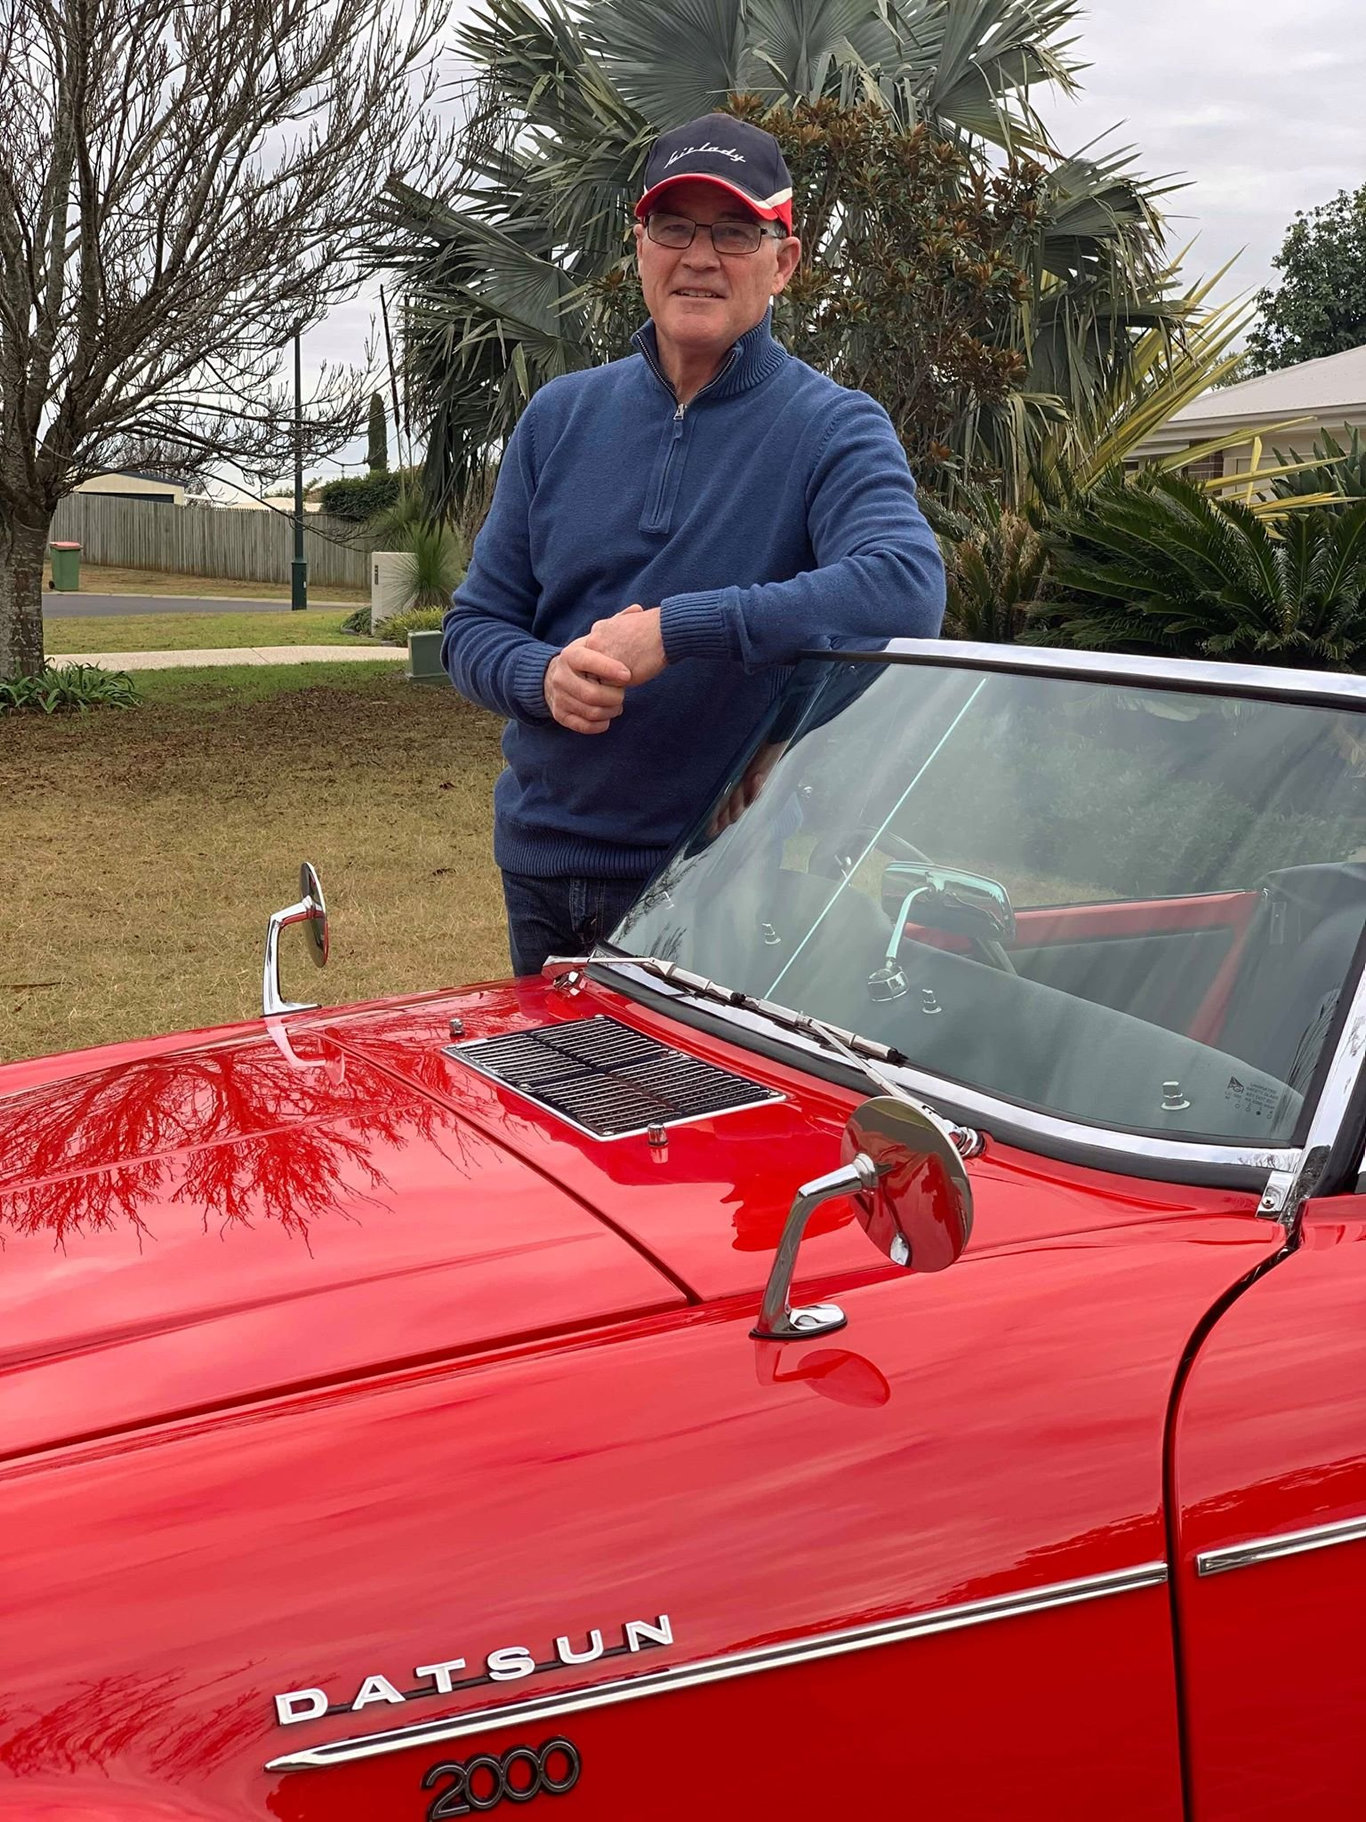 On the weekend, the Datsun Sports Owners Association of Queensland visited Toowoomba. Bill Cahill with his restored 1965 Datsun Fairlady.